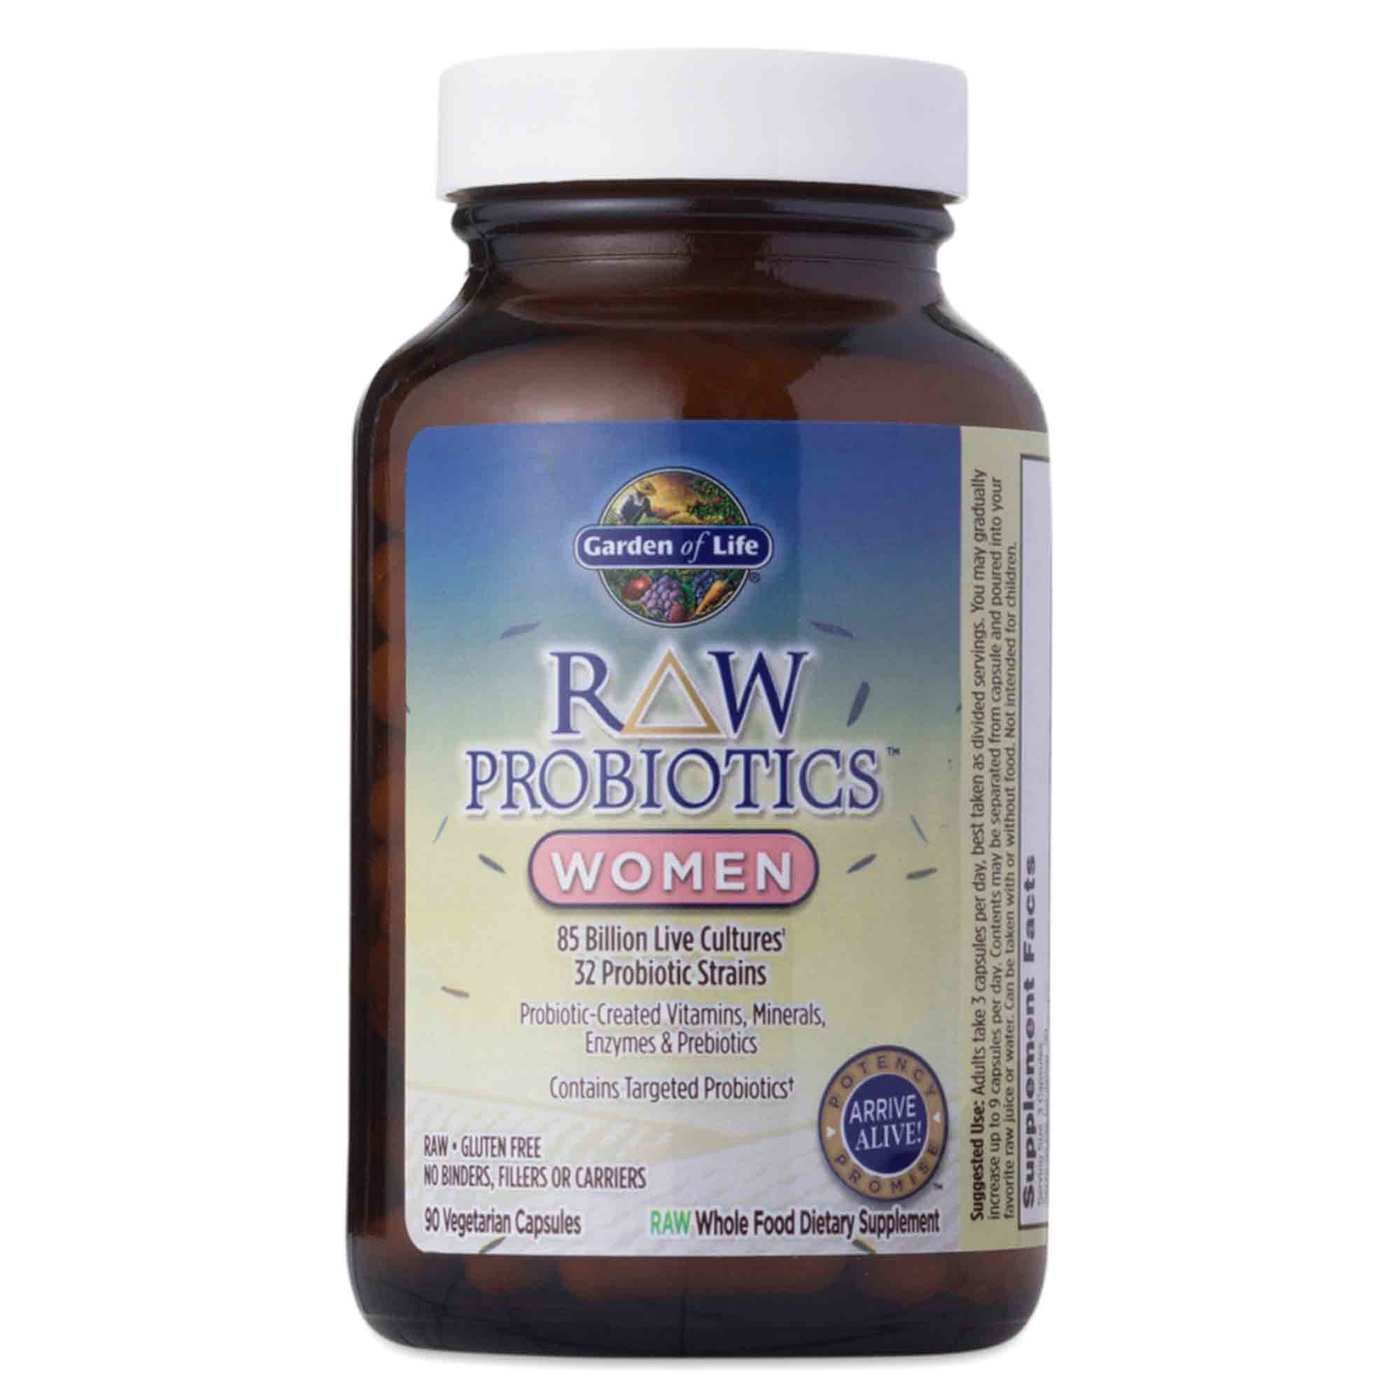 shop probiotics care formula and heb of prices organic capsules garden primal health category low ultra ultimate natural everyday supplements beauty life probiotic defense vitamin raw online